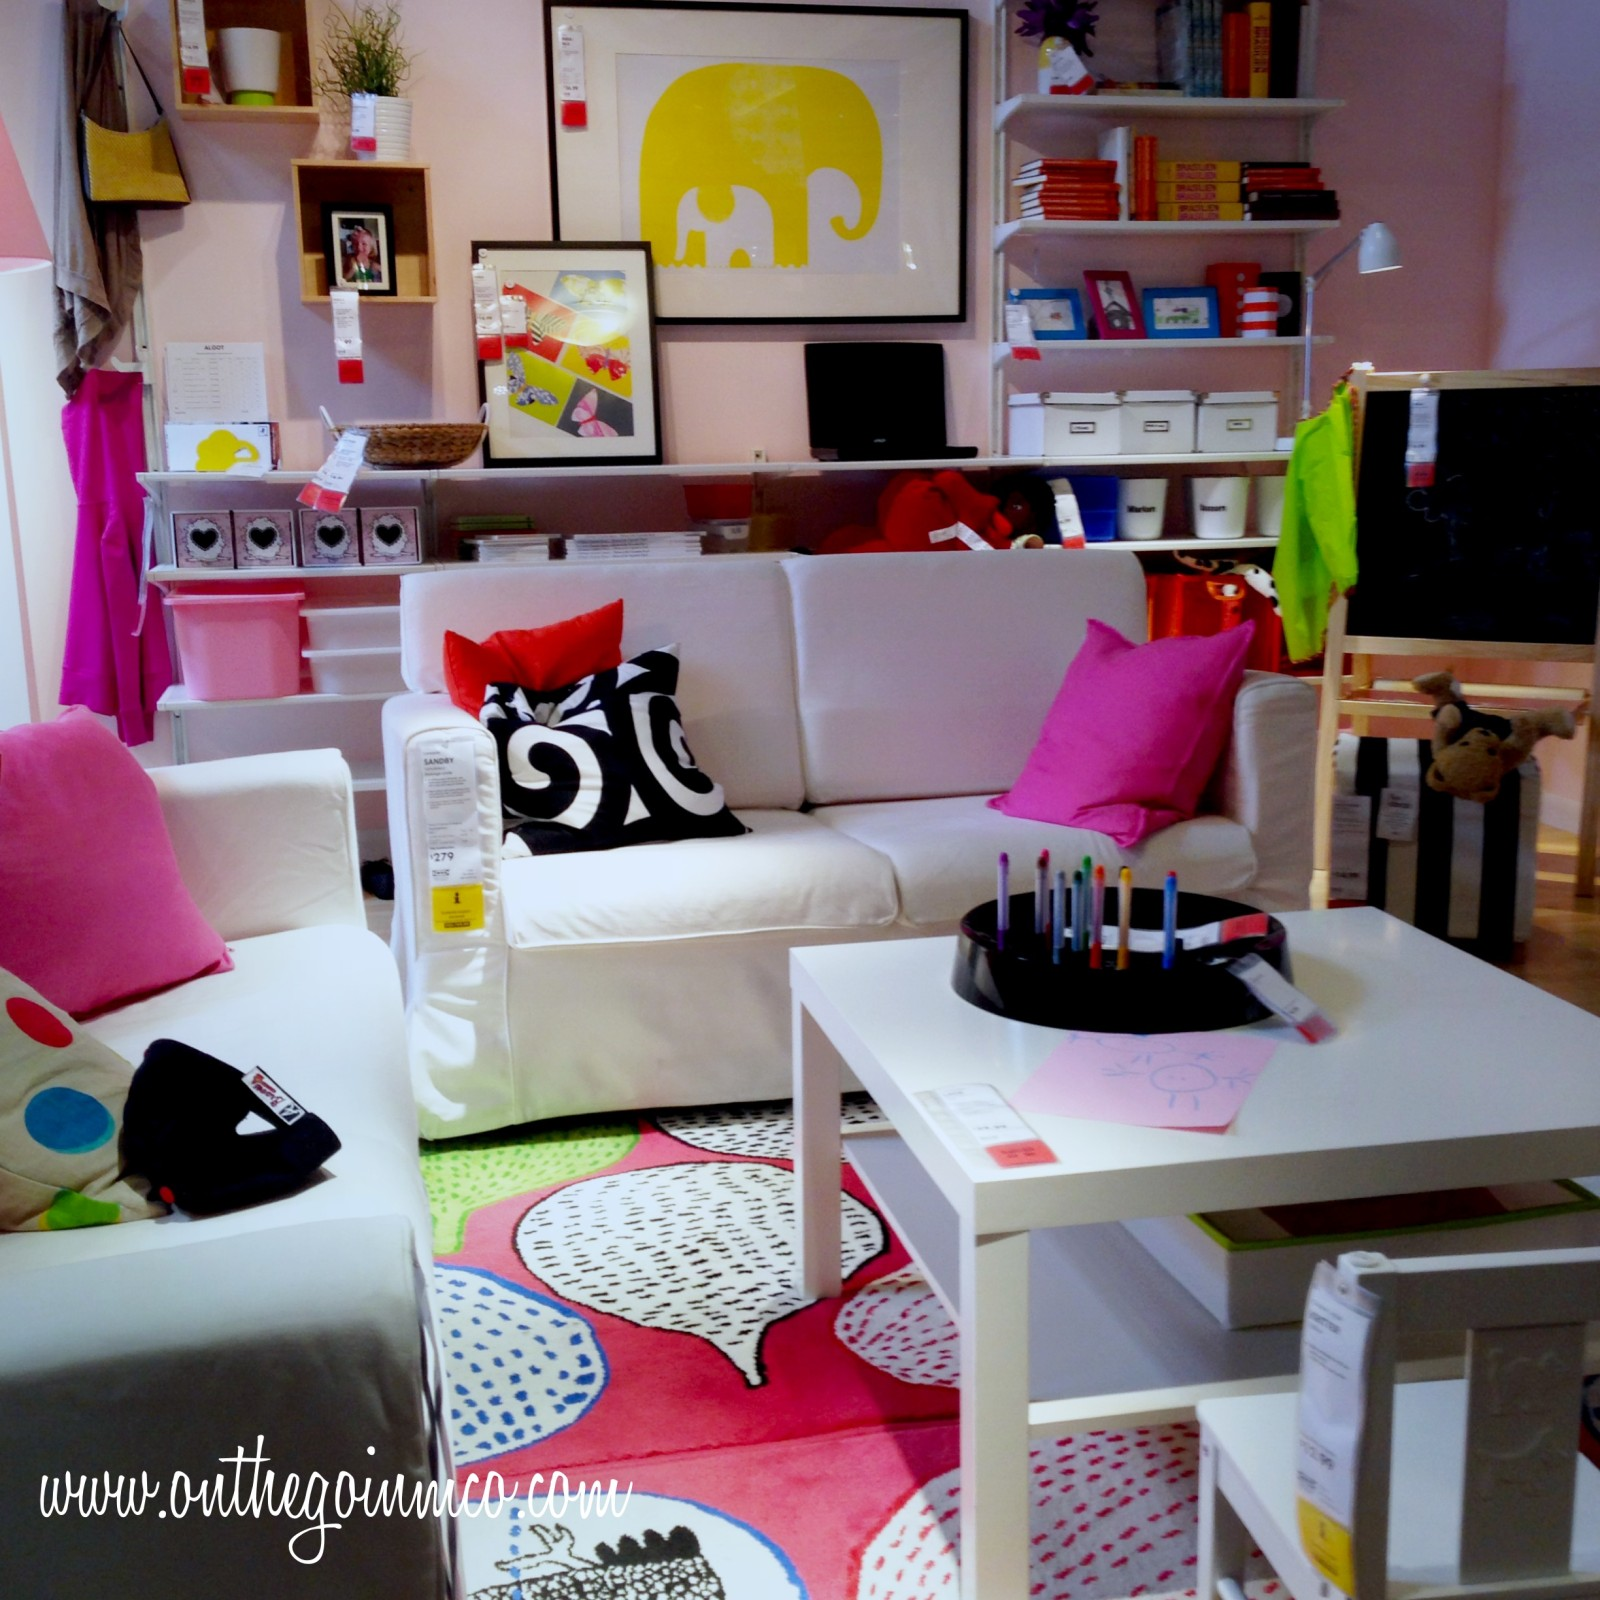 IKEA Orlando Young Child and Smaller Space Showroom Scenario